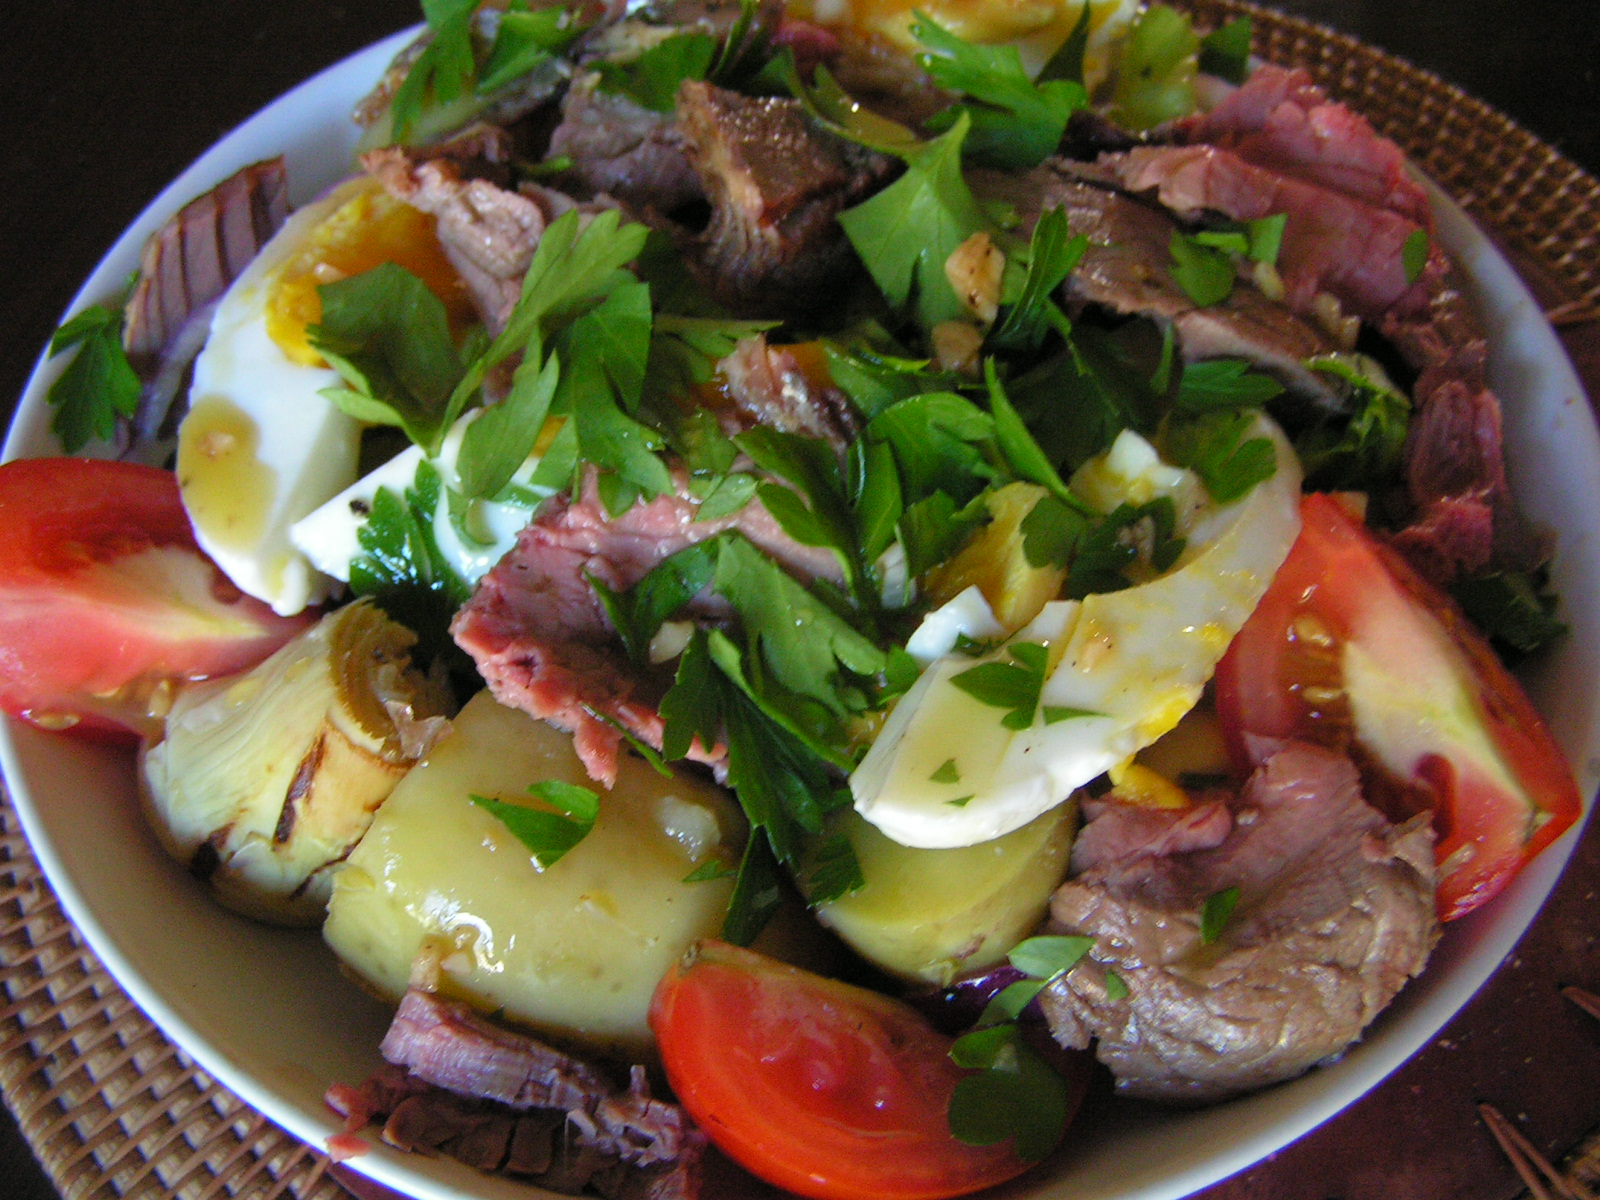 Beef and artichoke salad